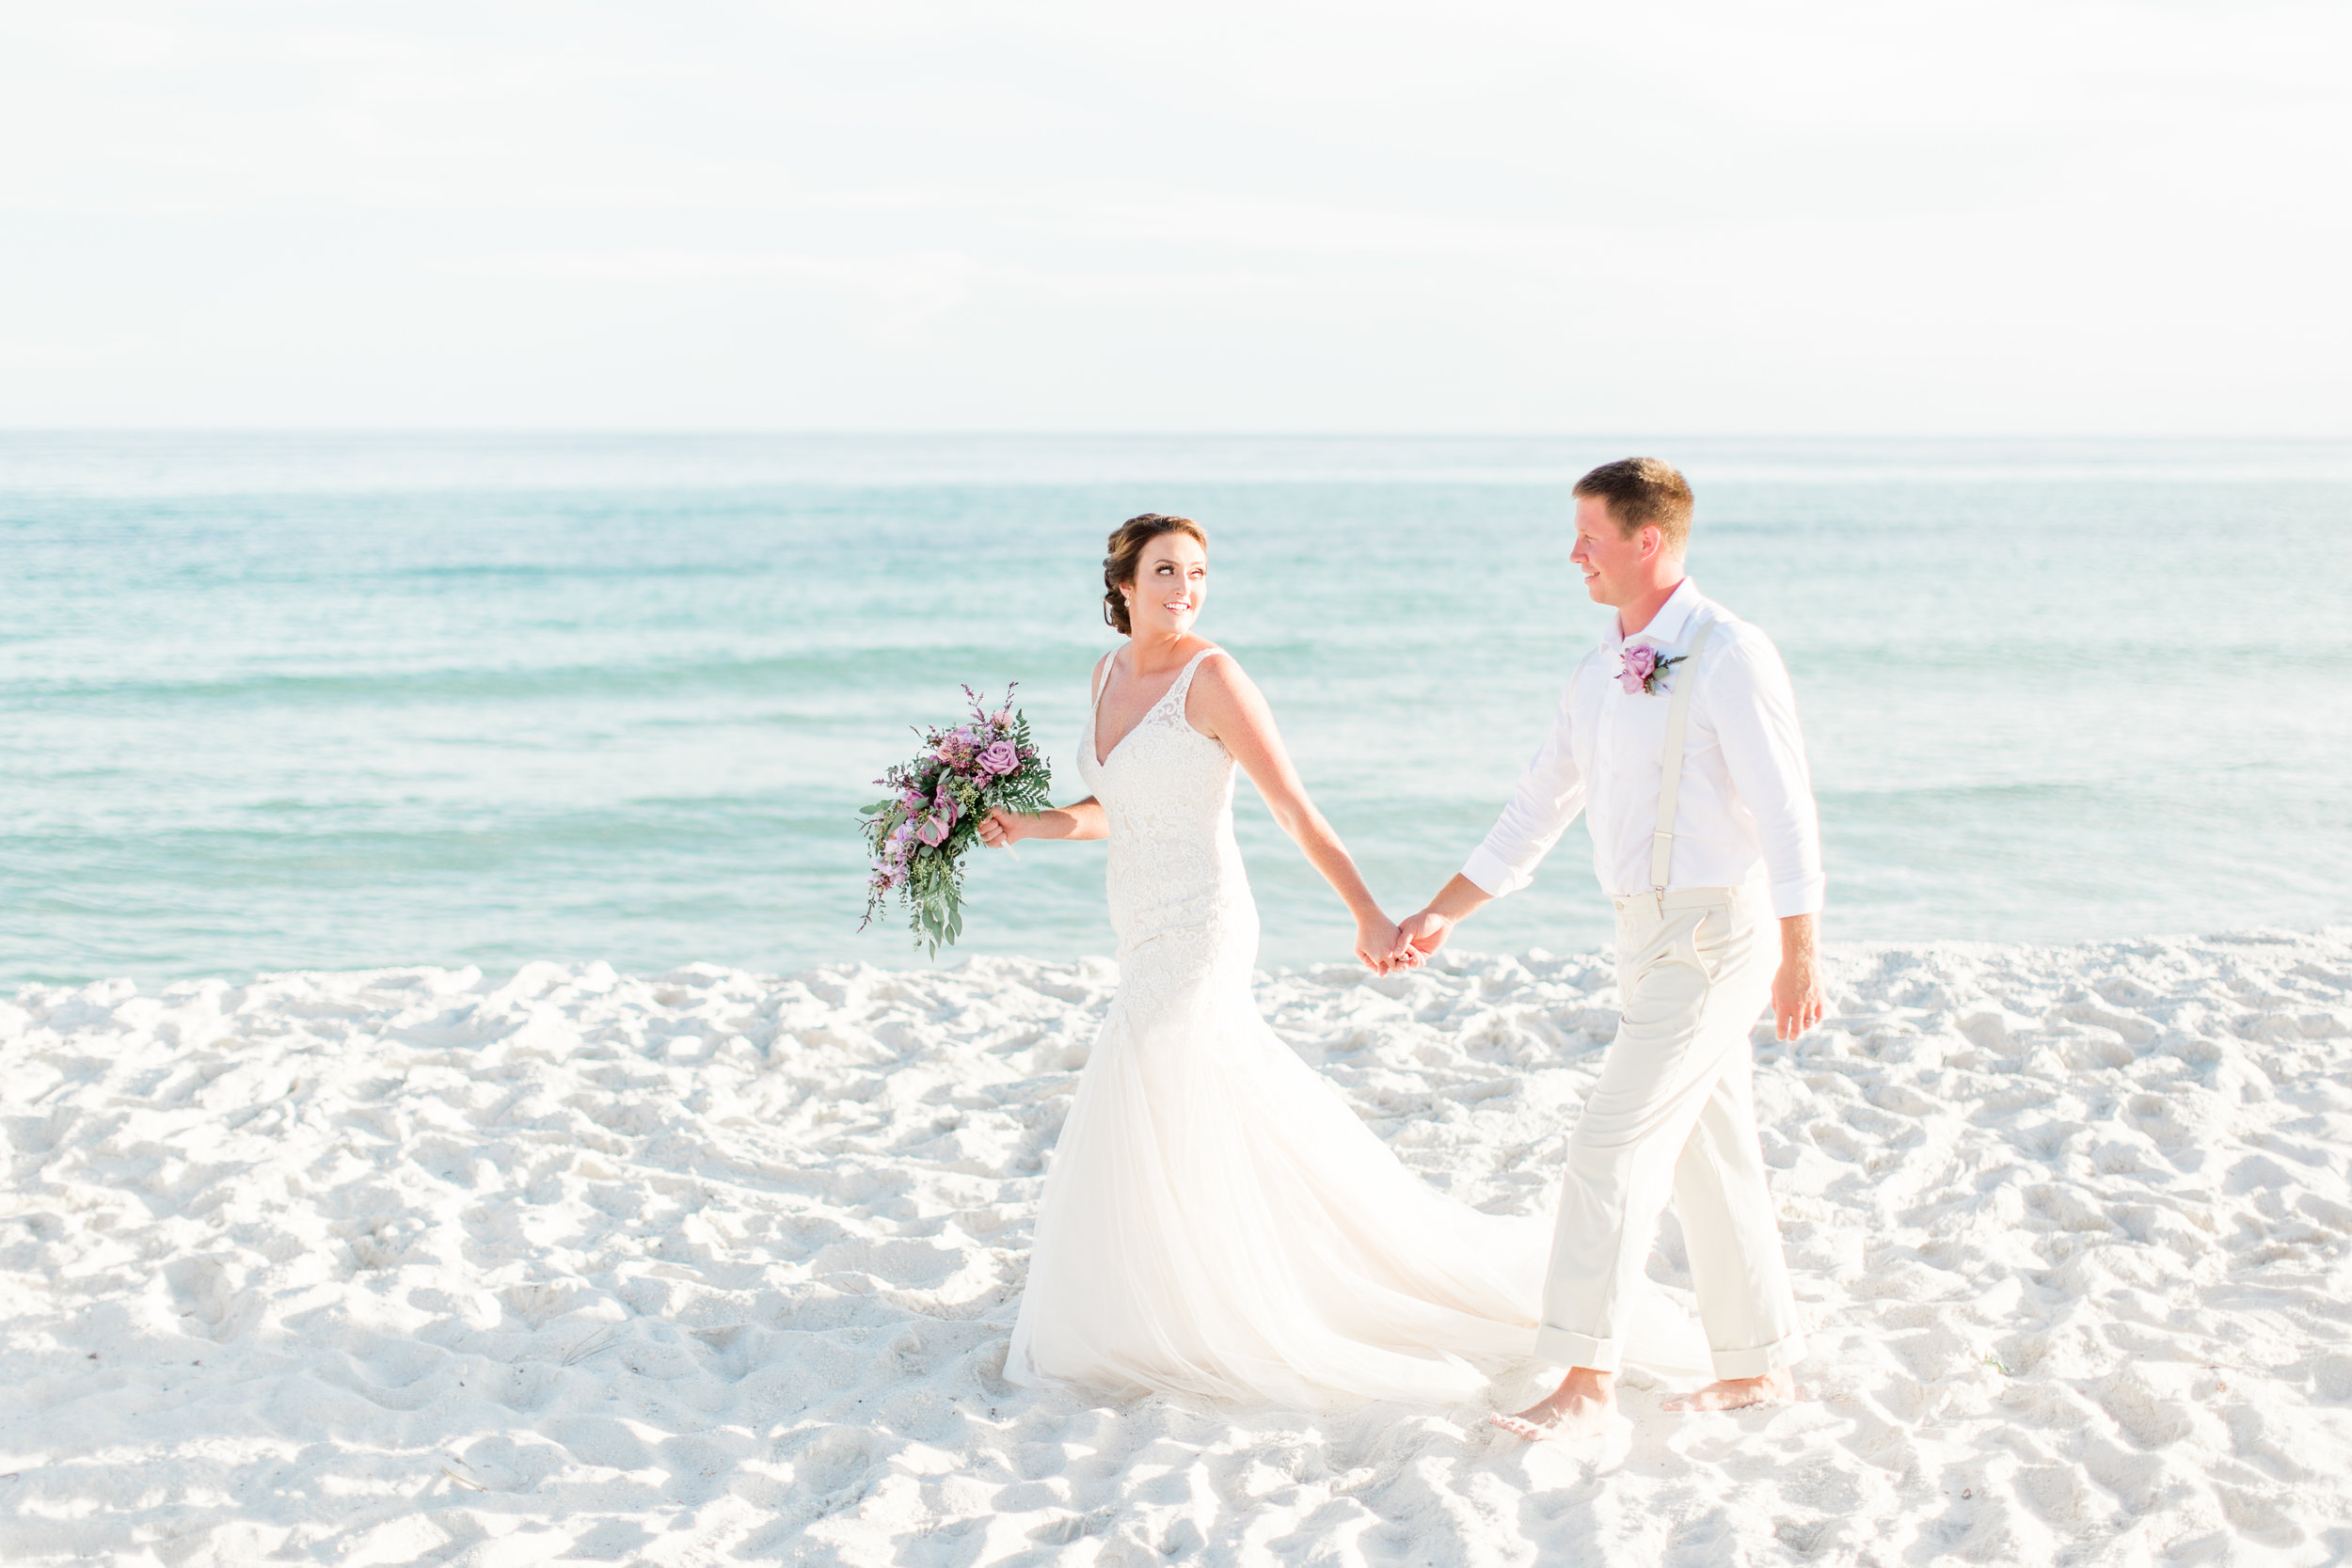 ALLYOGRAPHY_EdwardsWedding_Rental_NavarreFlorida-61.jpg